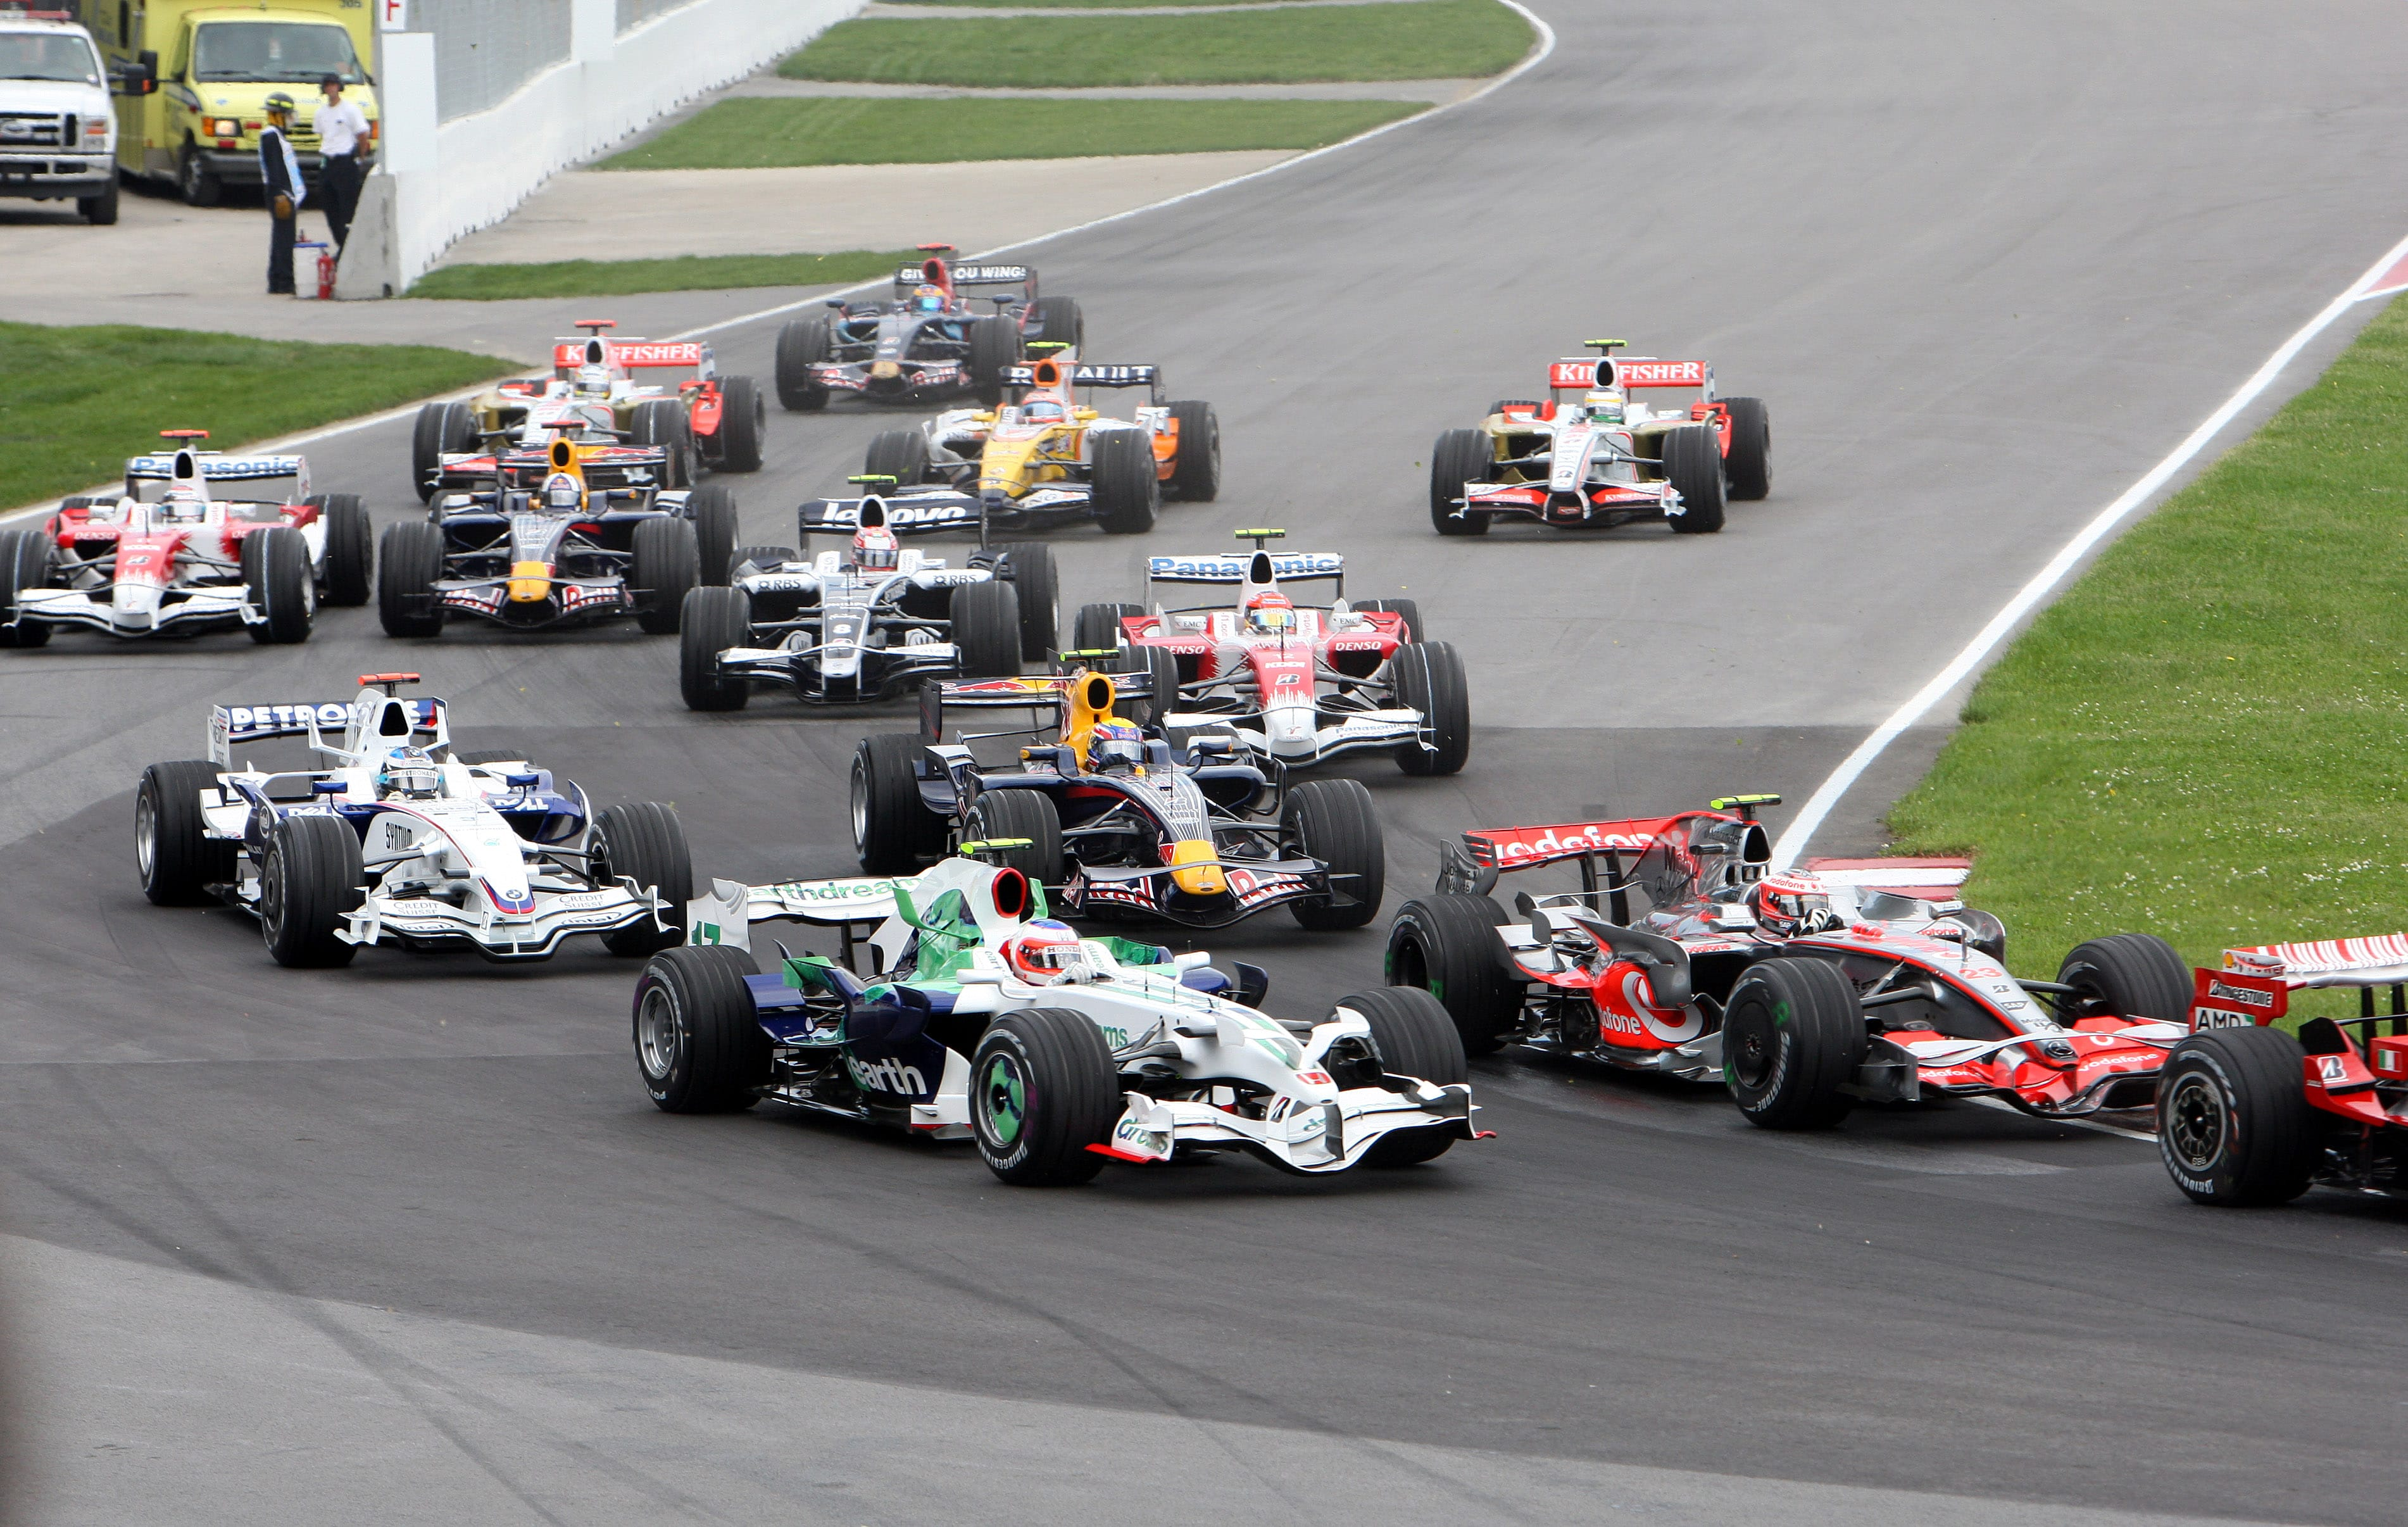 formula 1 in montreal extended to 2024 montreal grand prix. Black Bedroom Furniture Sets. Home Design Ideas